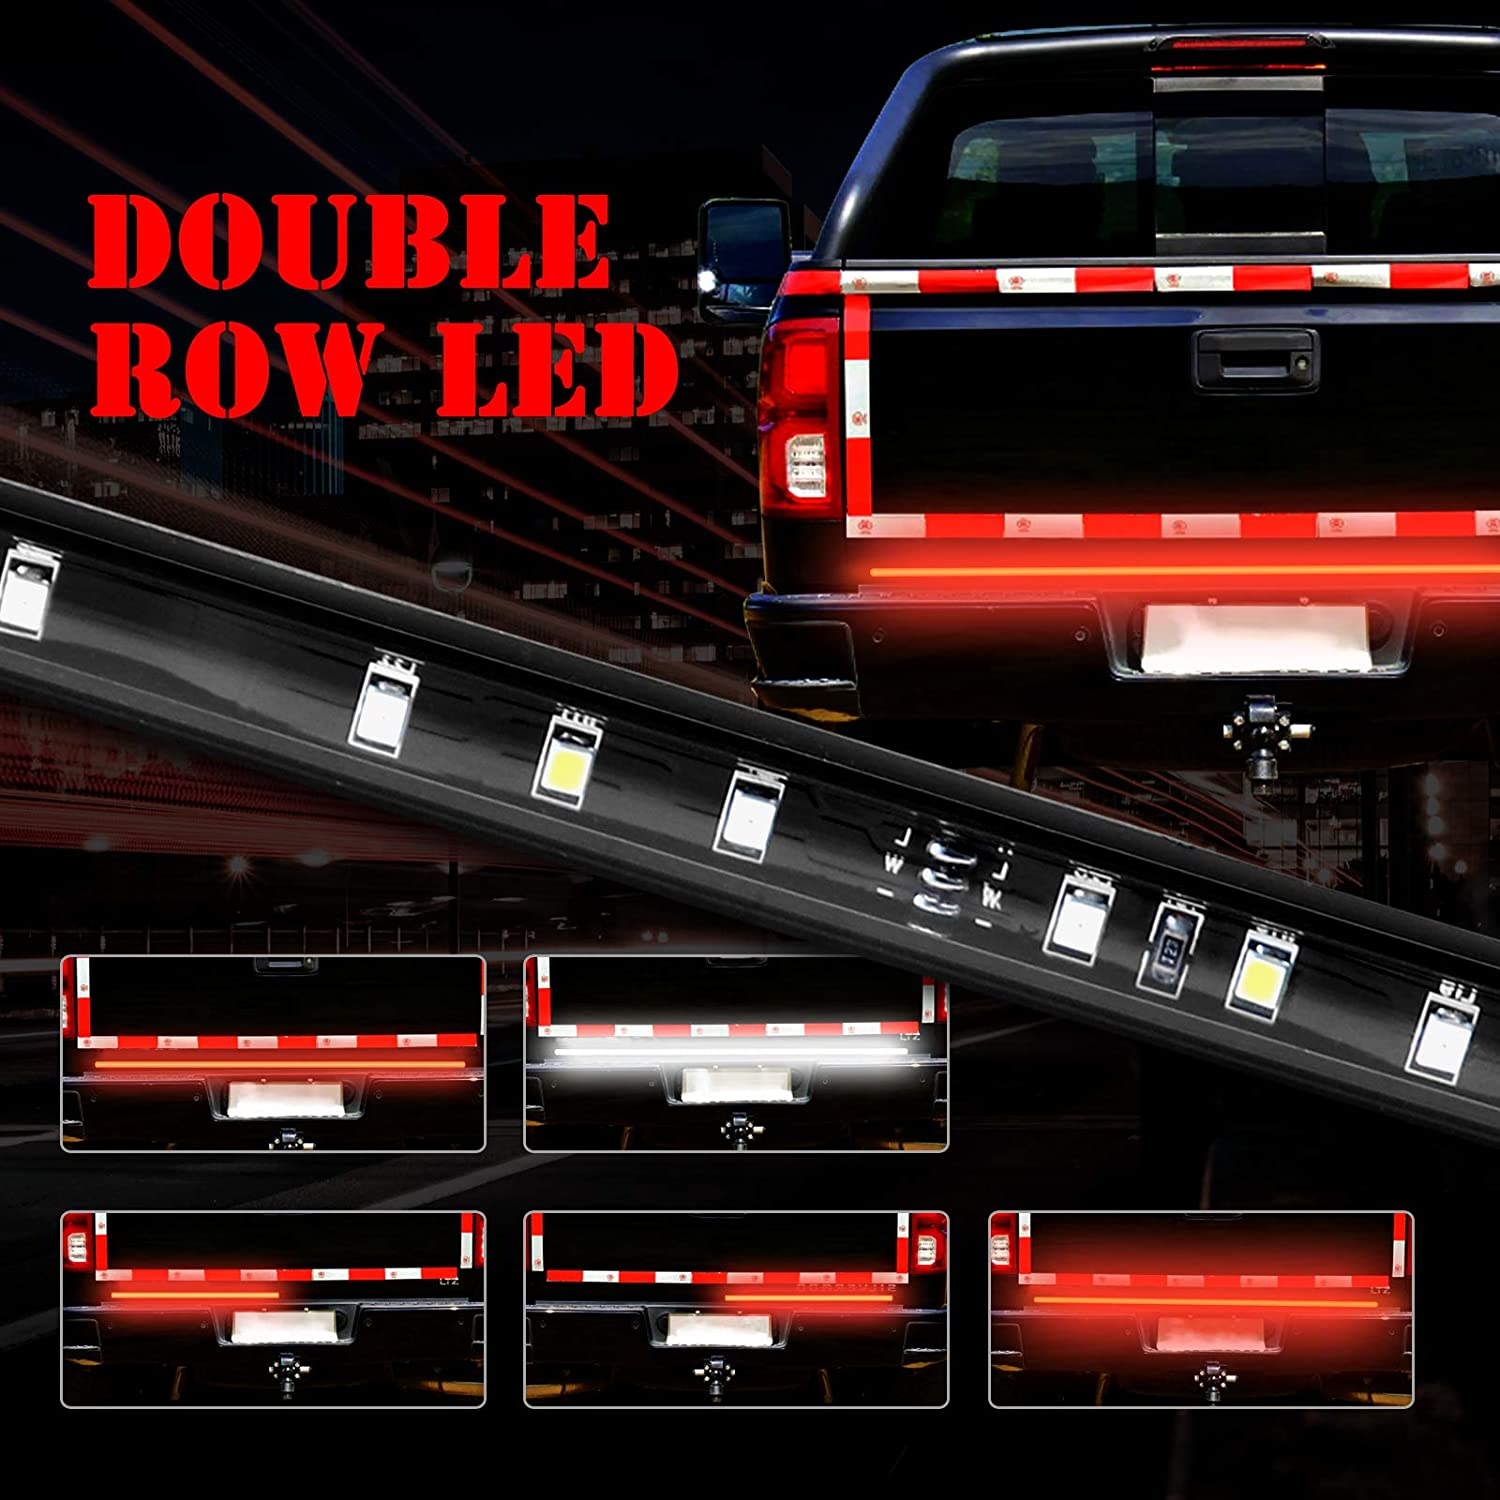 Brake Light Reverse Light 60 Inch LED Tailgate Light Bar,504 LED Triple Row Truck Tail Light Strip Waterproof for Pickup Trailer SUV RV VAN with 4 Pin Flat Connector Wire,Turn Signal Running